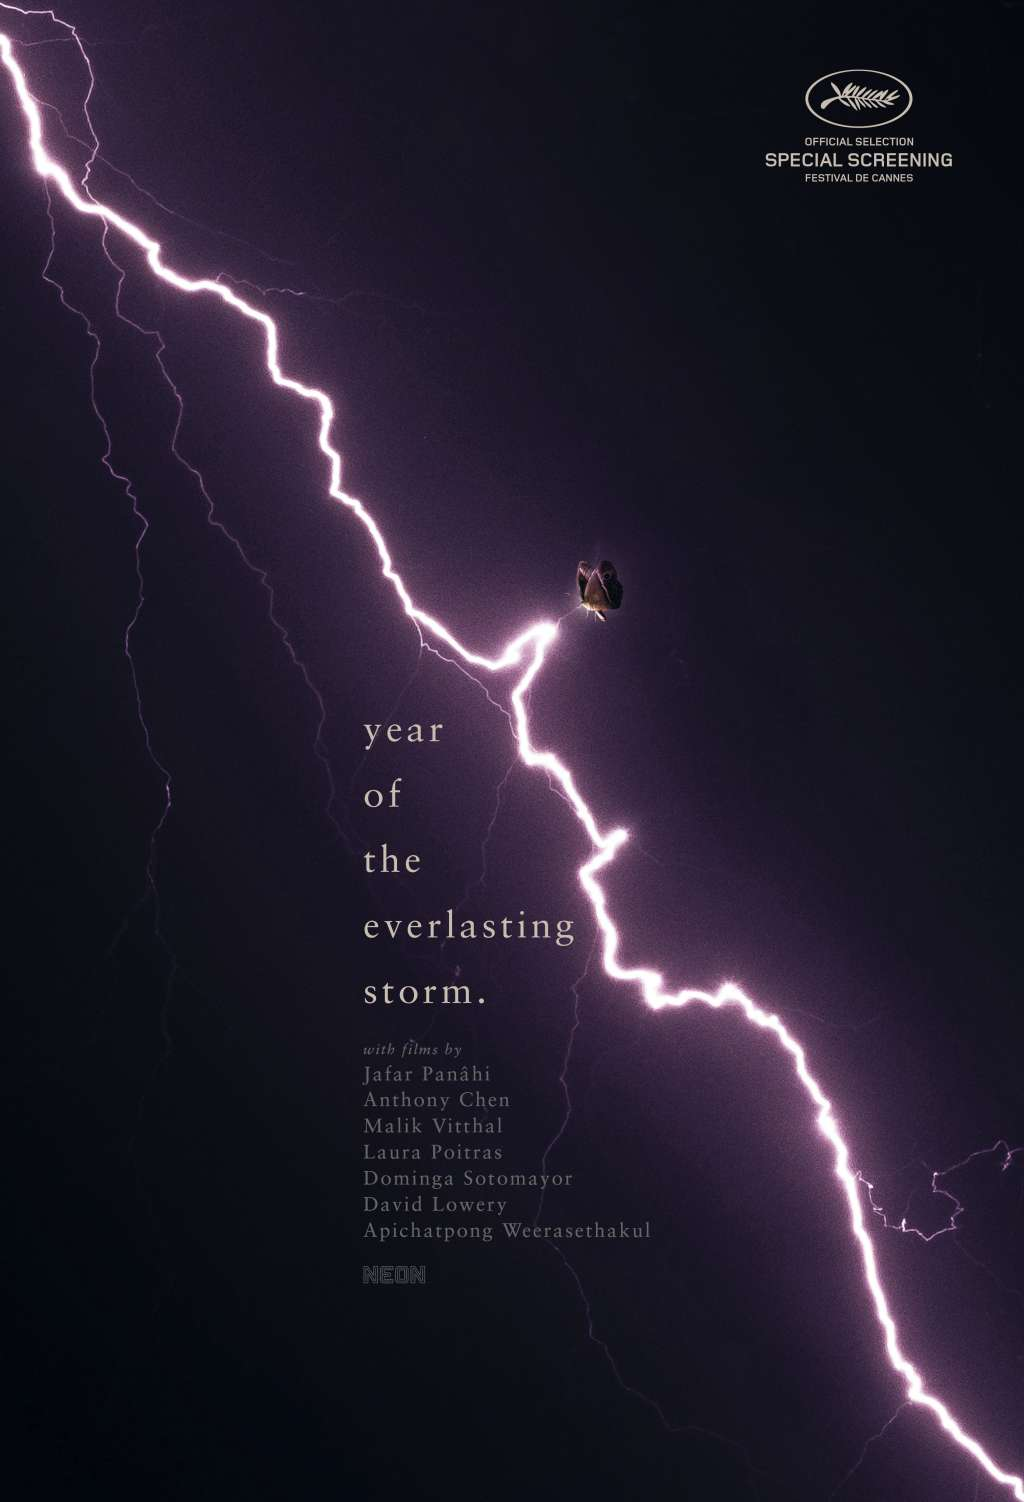 The Year of the Everlasting Storm kapak